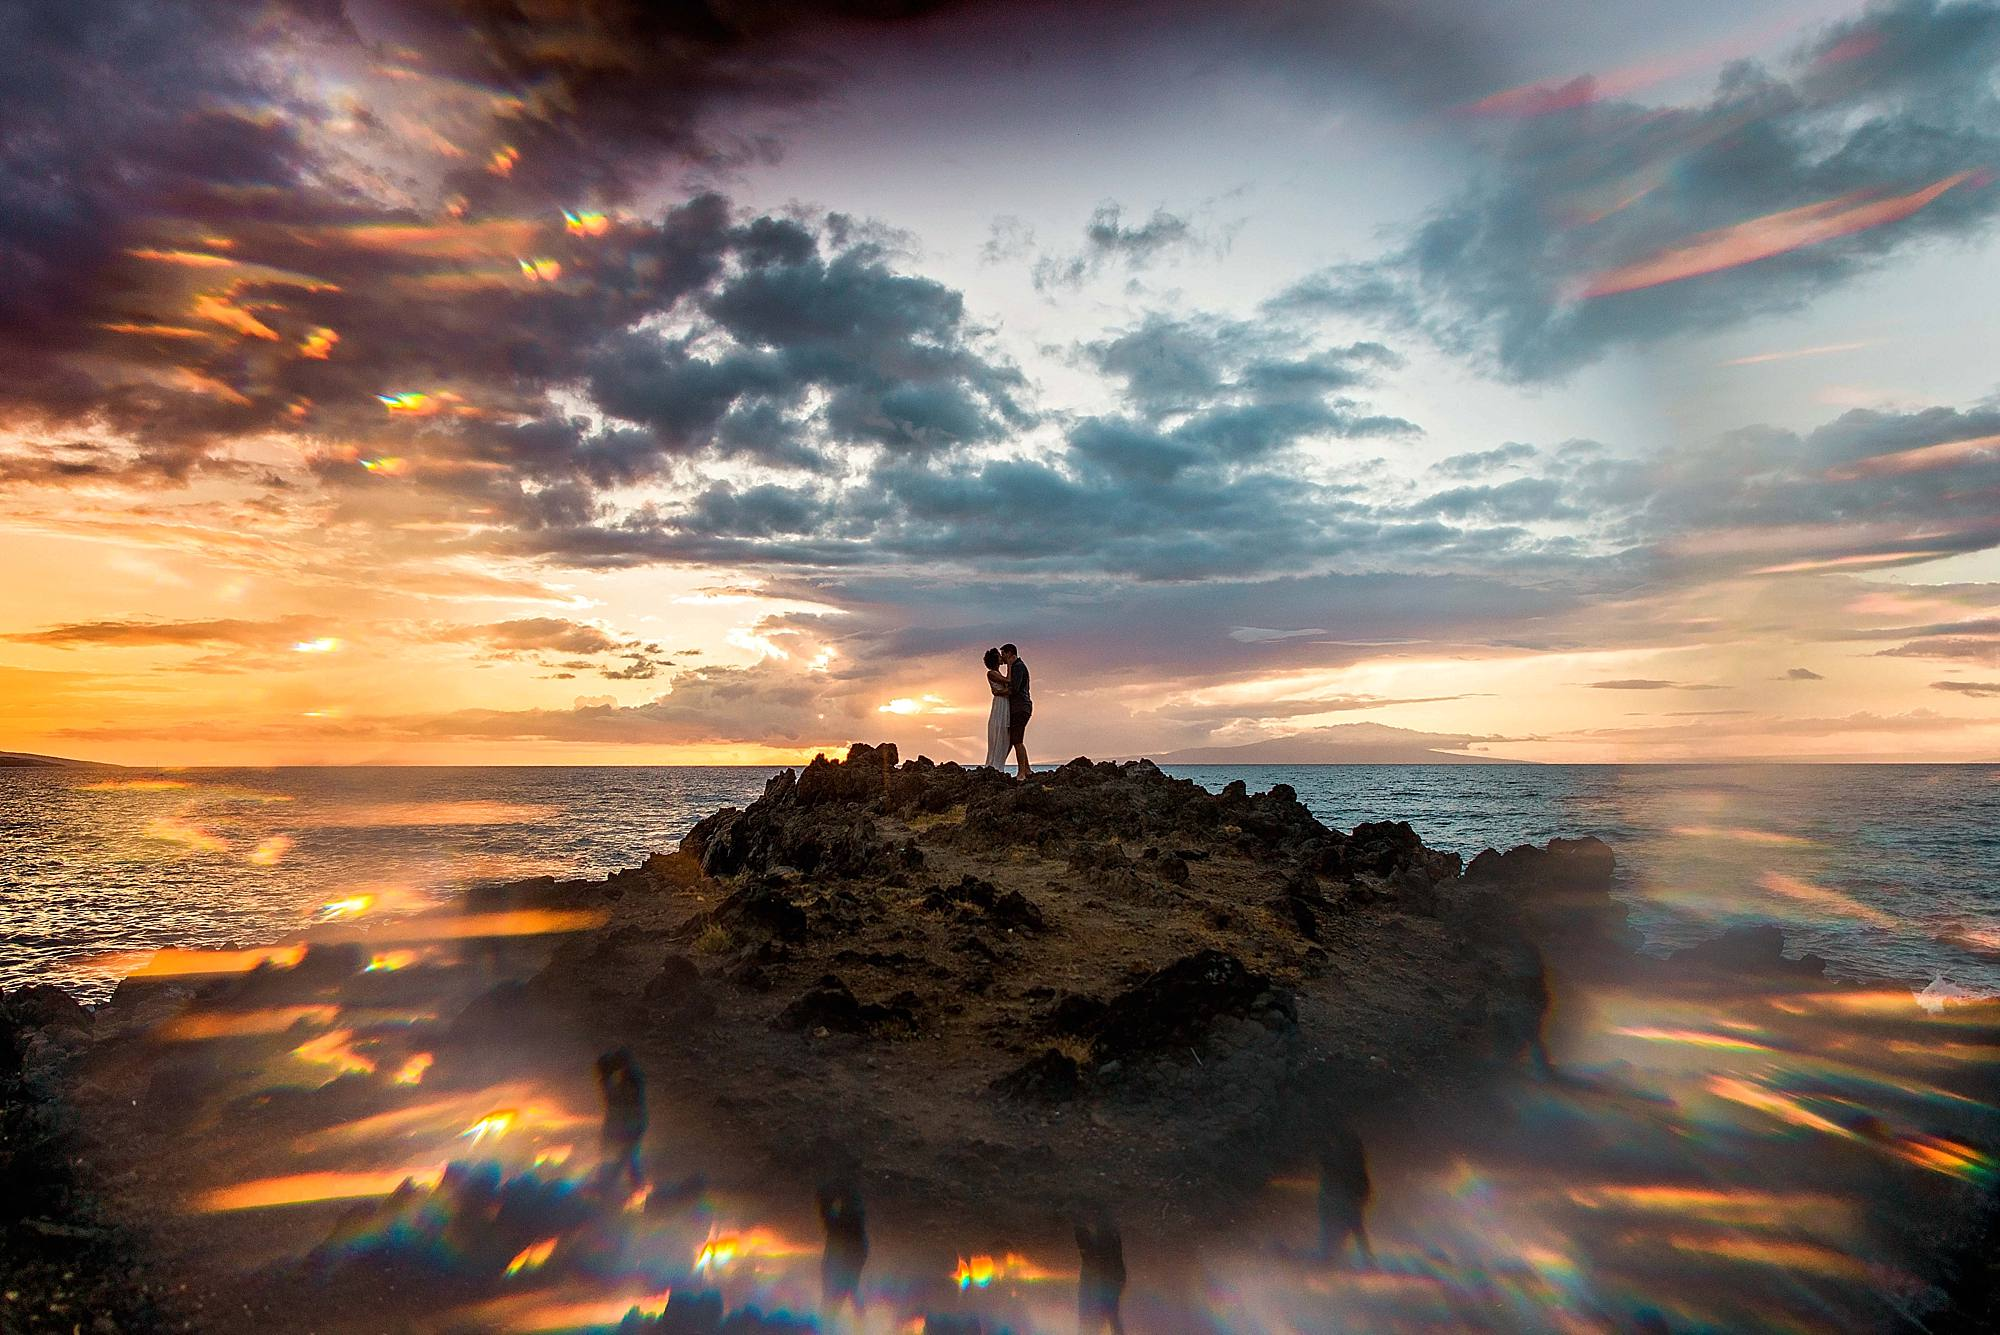 prism photography in maui, hawaii